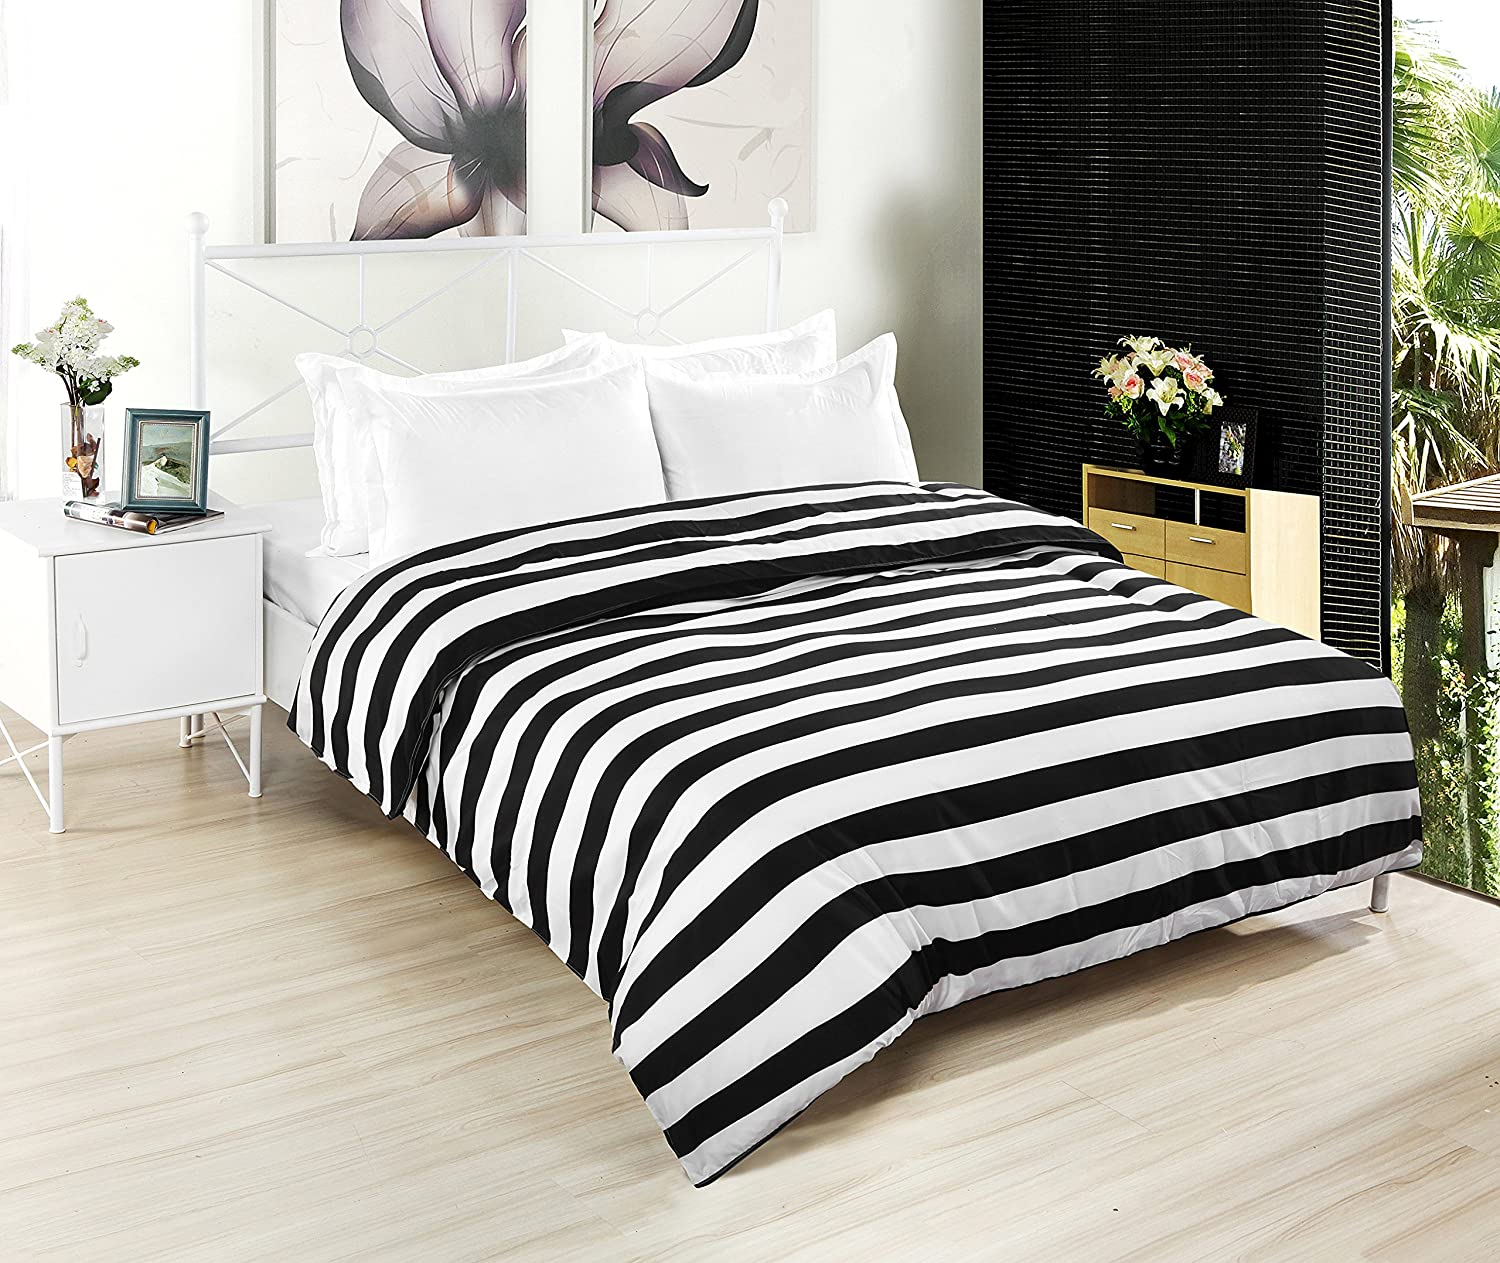 Black and white striped bed sheets - Kuality Black White Striped Soft Microfiber Easy Care Bedding Duvet Cover